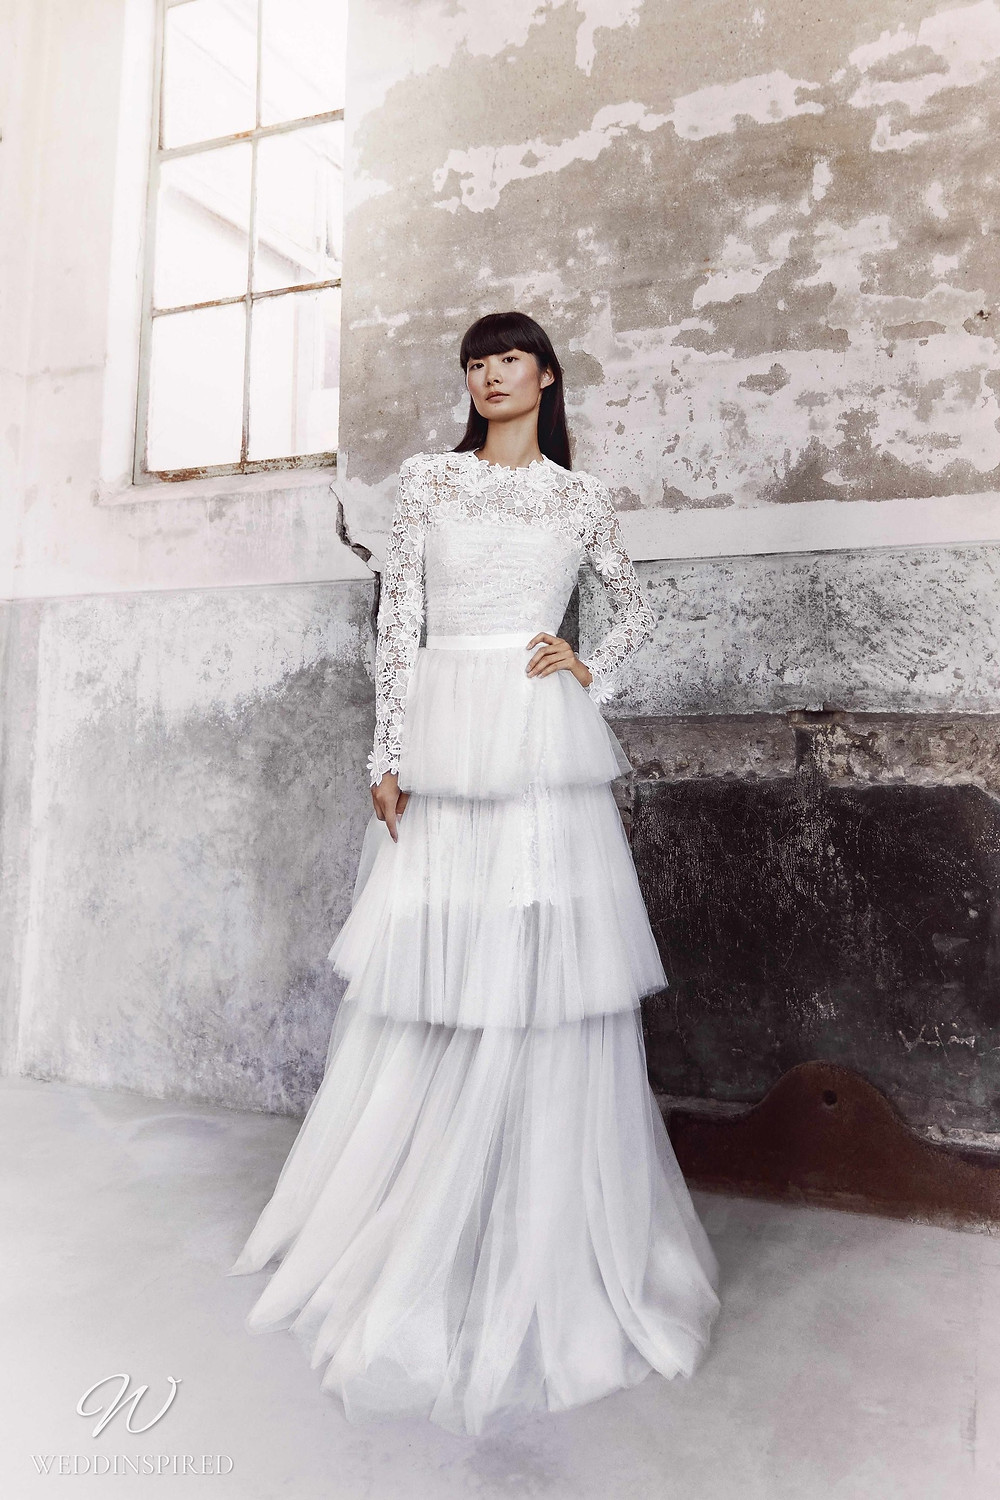 A Viktor & Rolf Fall/Winter 2021 modest lace and tulle A-line wedding dress with long sleeves, a high neckline and a layered ruffle skirt